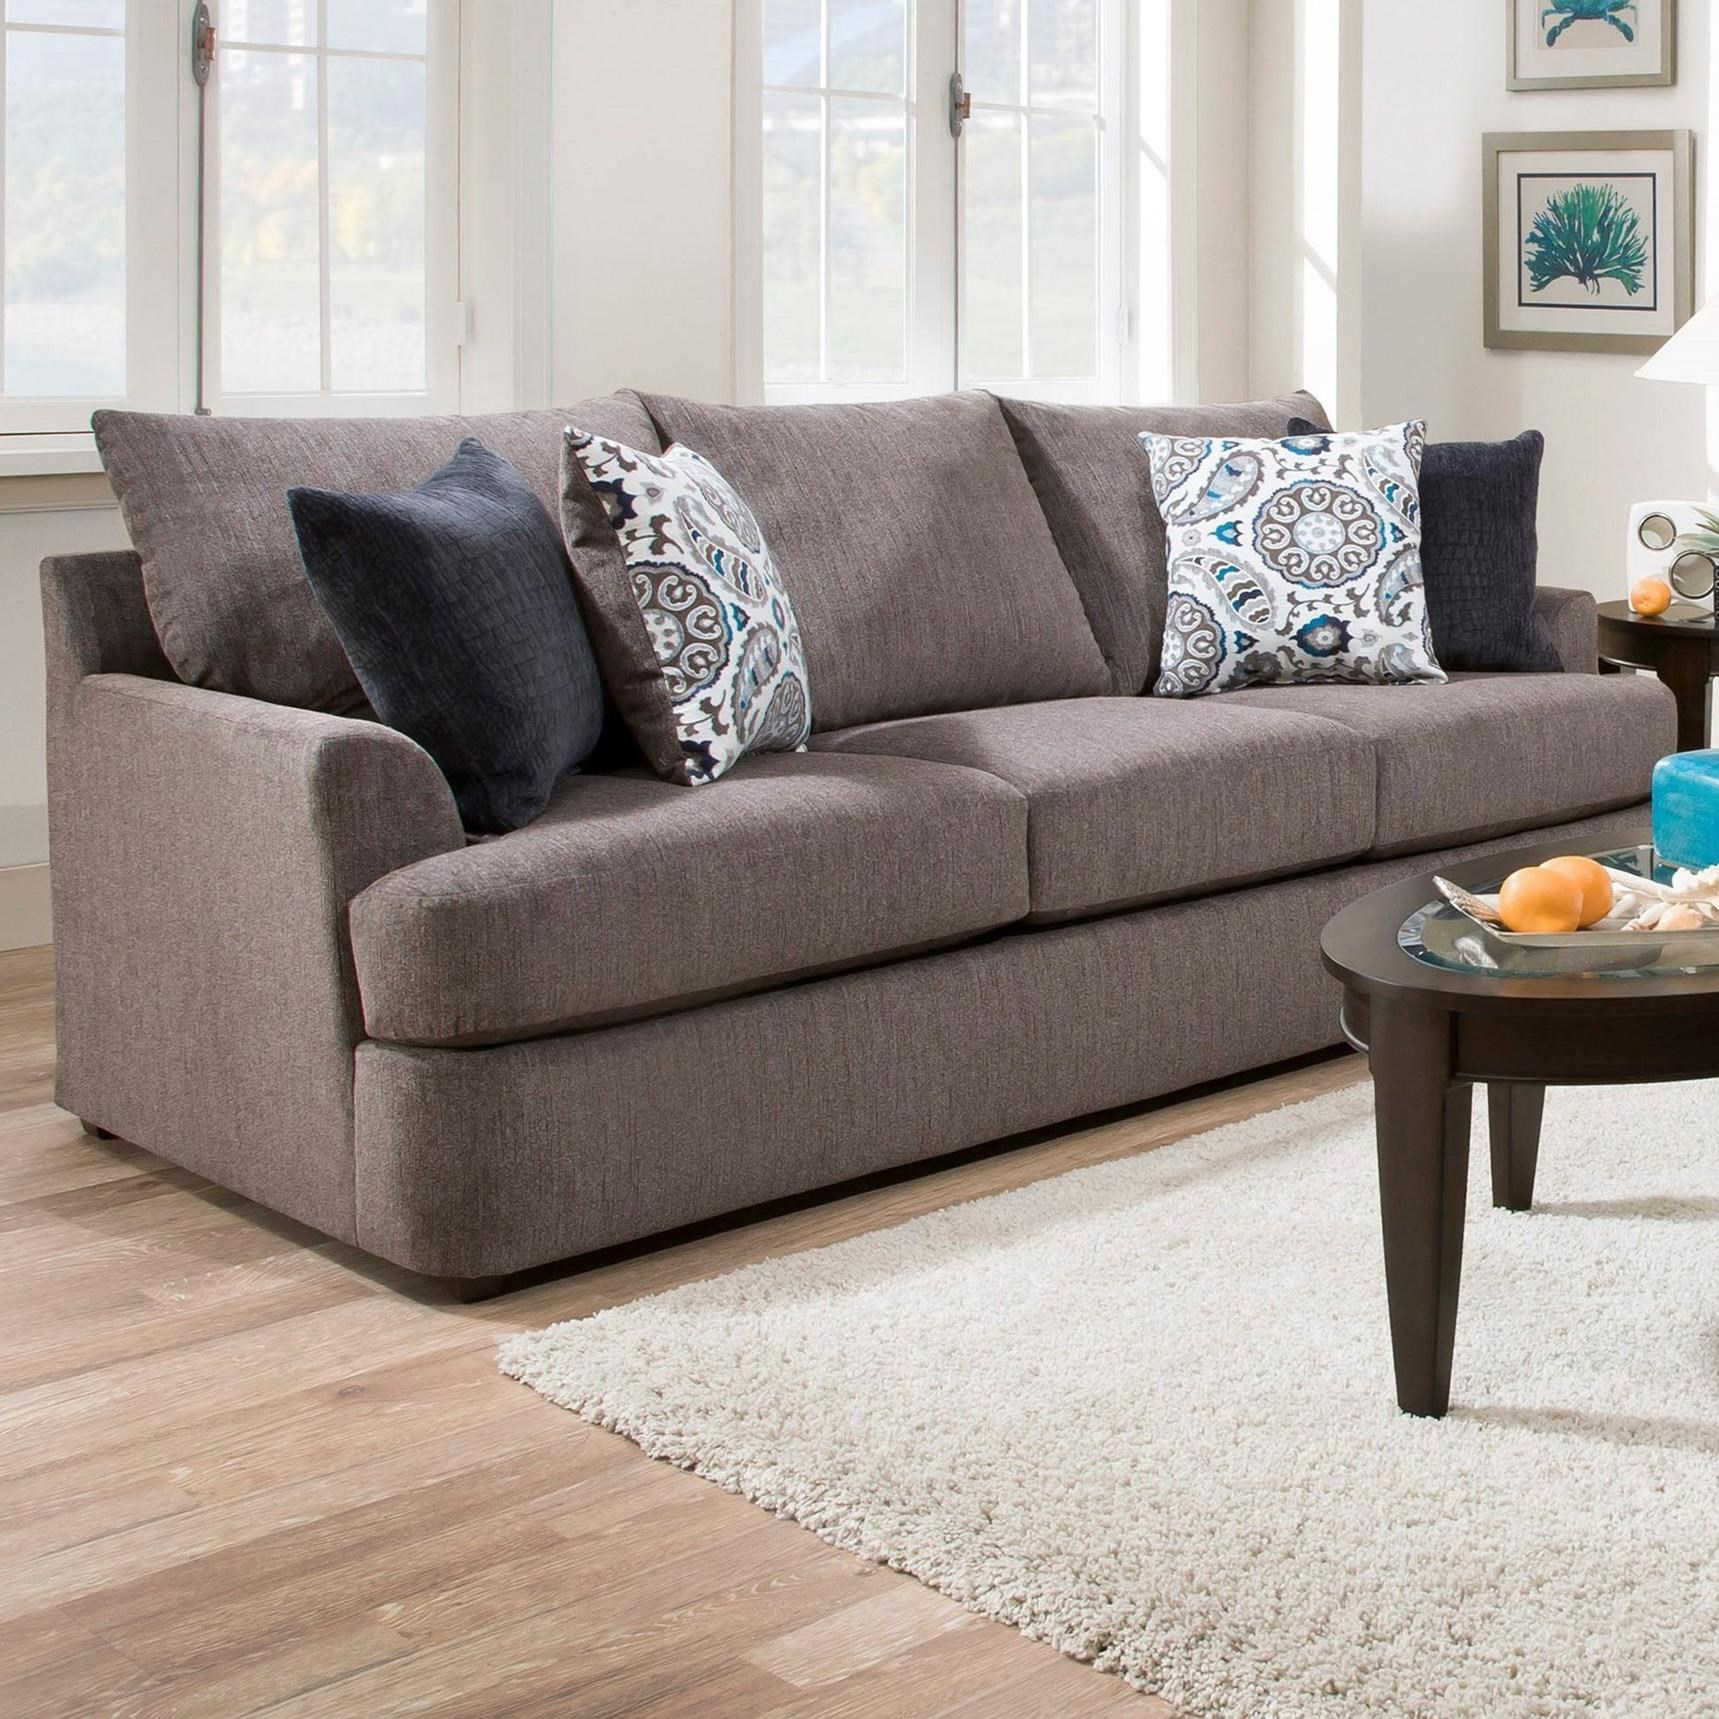 Beau United Furniture Industries 8540BR Casual Sofa   Item Number:  8540BRSofa GrandstandFlannel